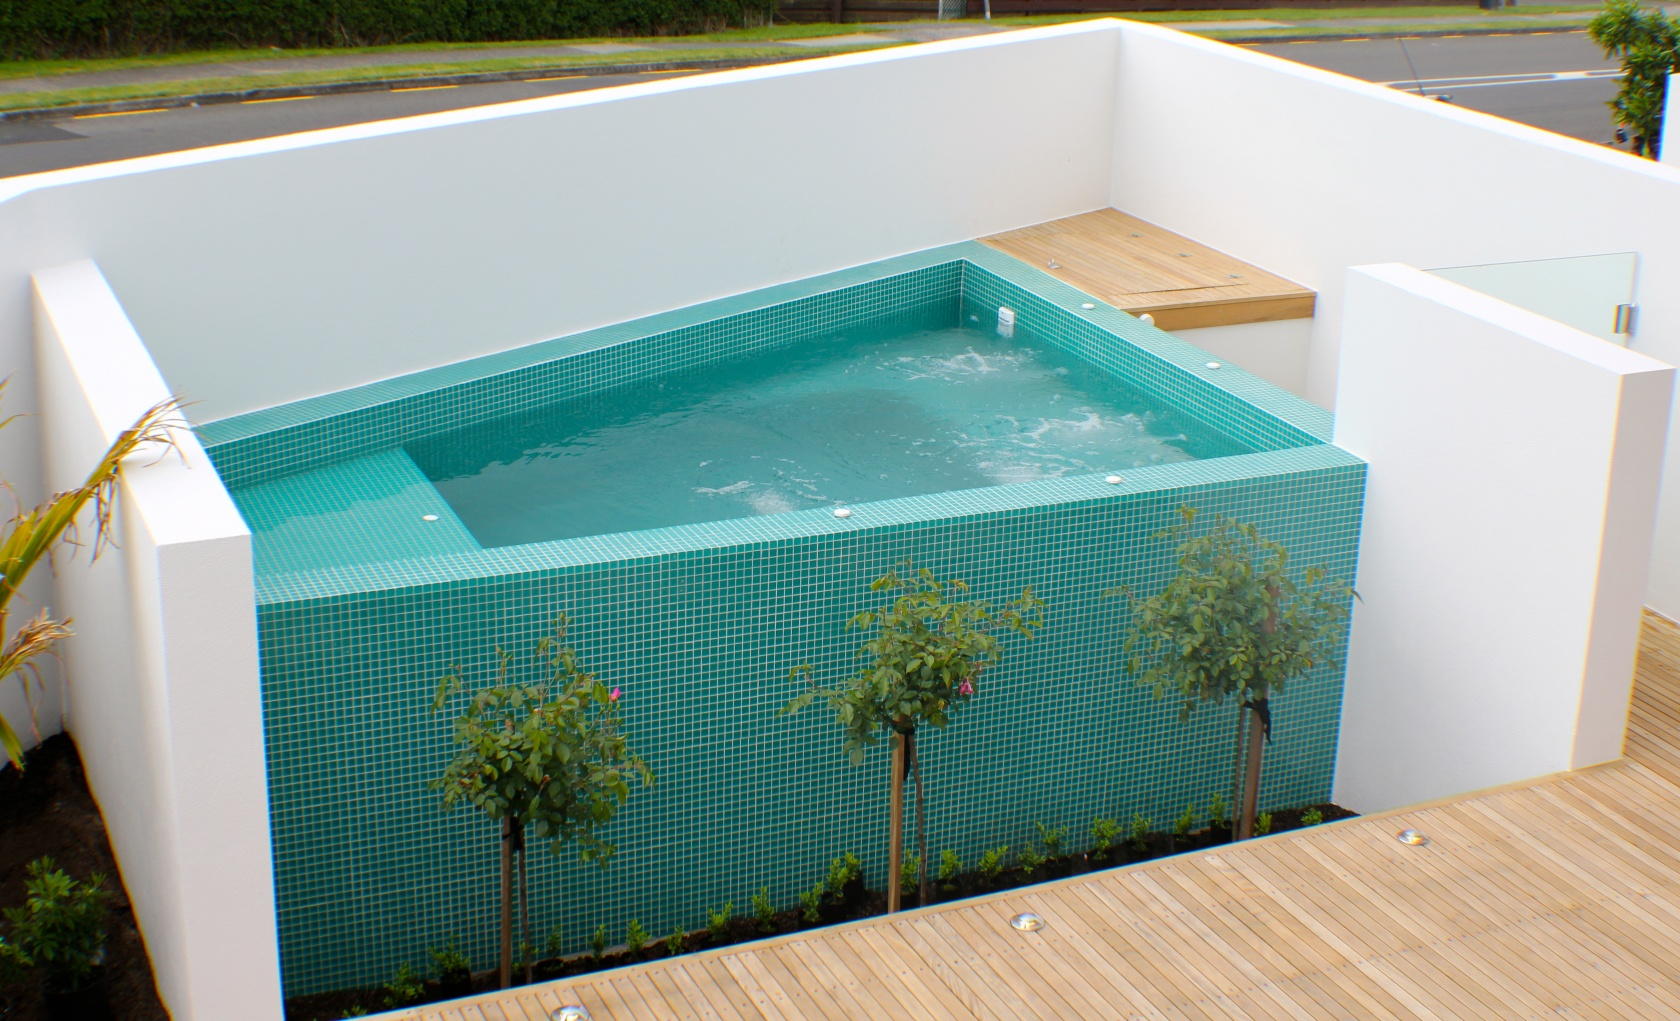 Home furthermore Tay Street Spa besides Glenmore Park Skatepark further 16495892 as well Food. on outdoor pool